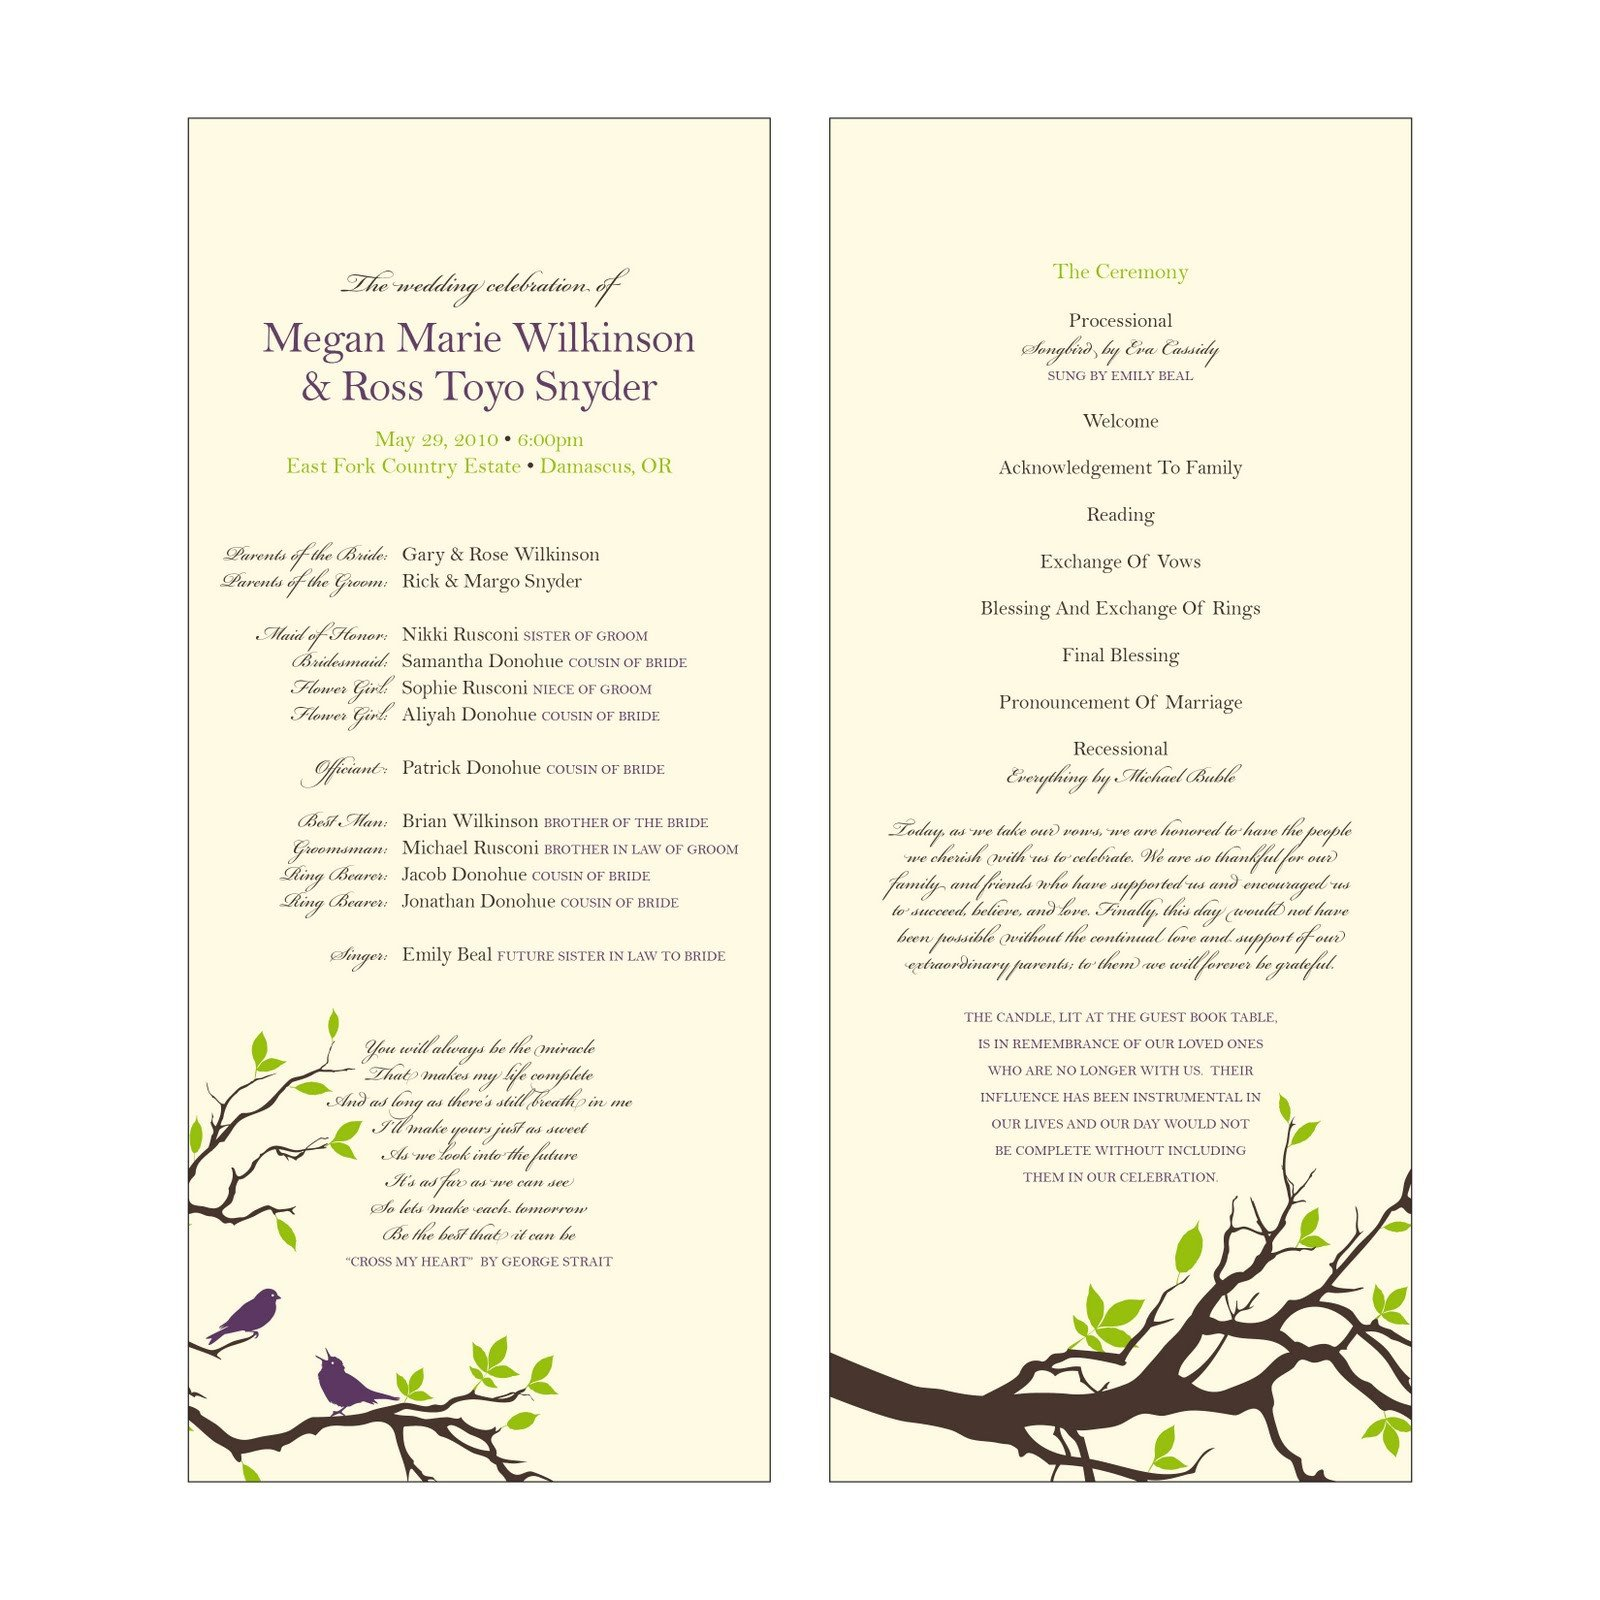 Catholic Wedding Program Template Free Lameeka S Blog Catholic Wedding Programs